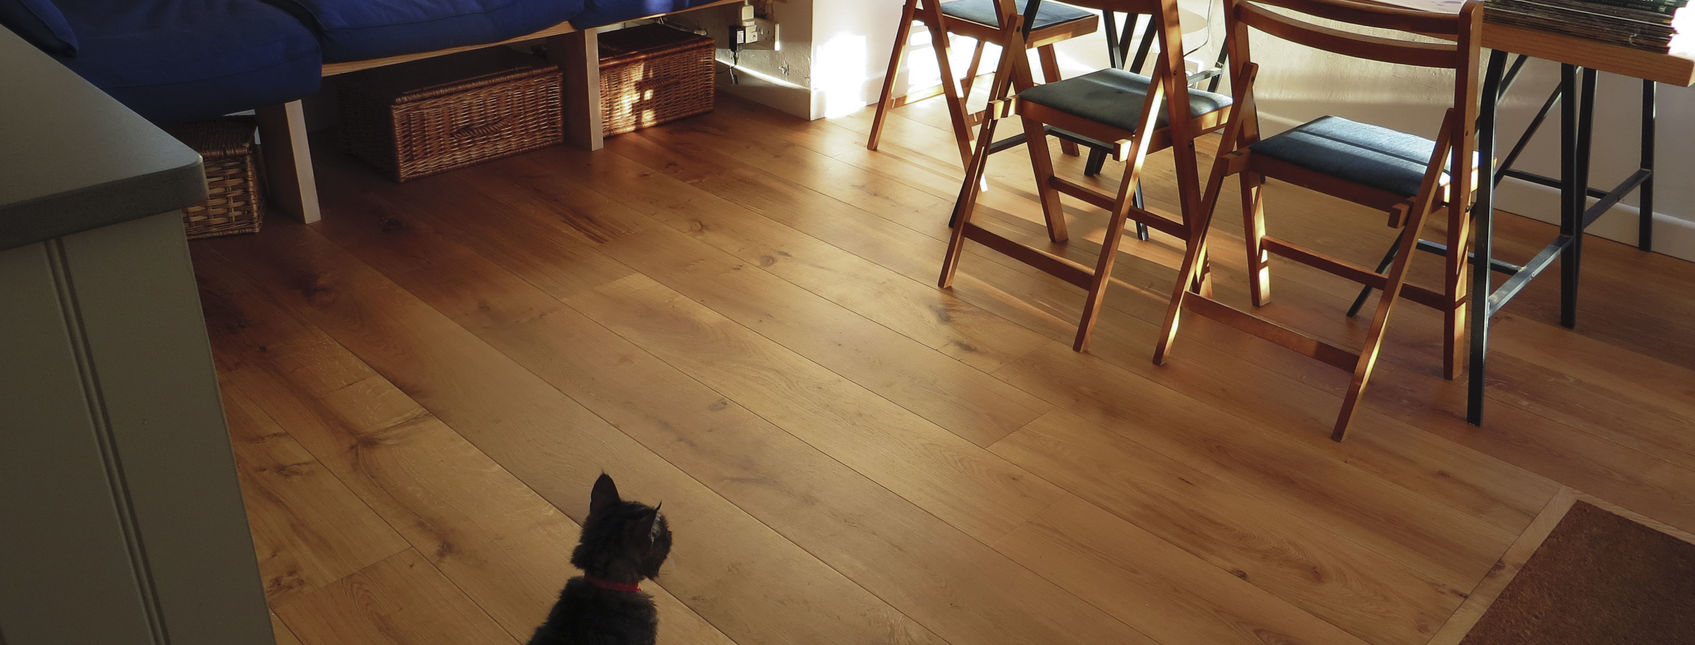 Wooden floors suitable for our fury friends